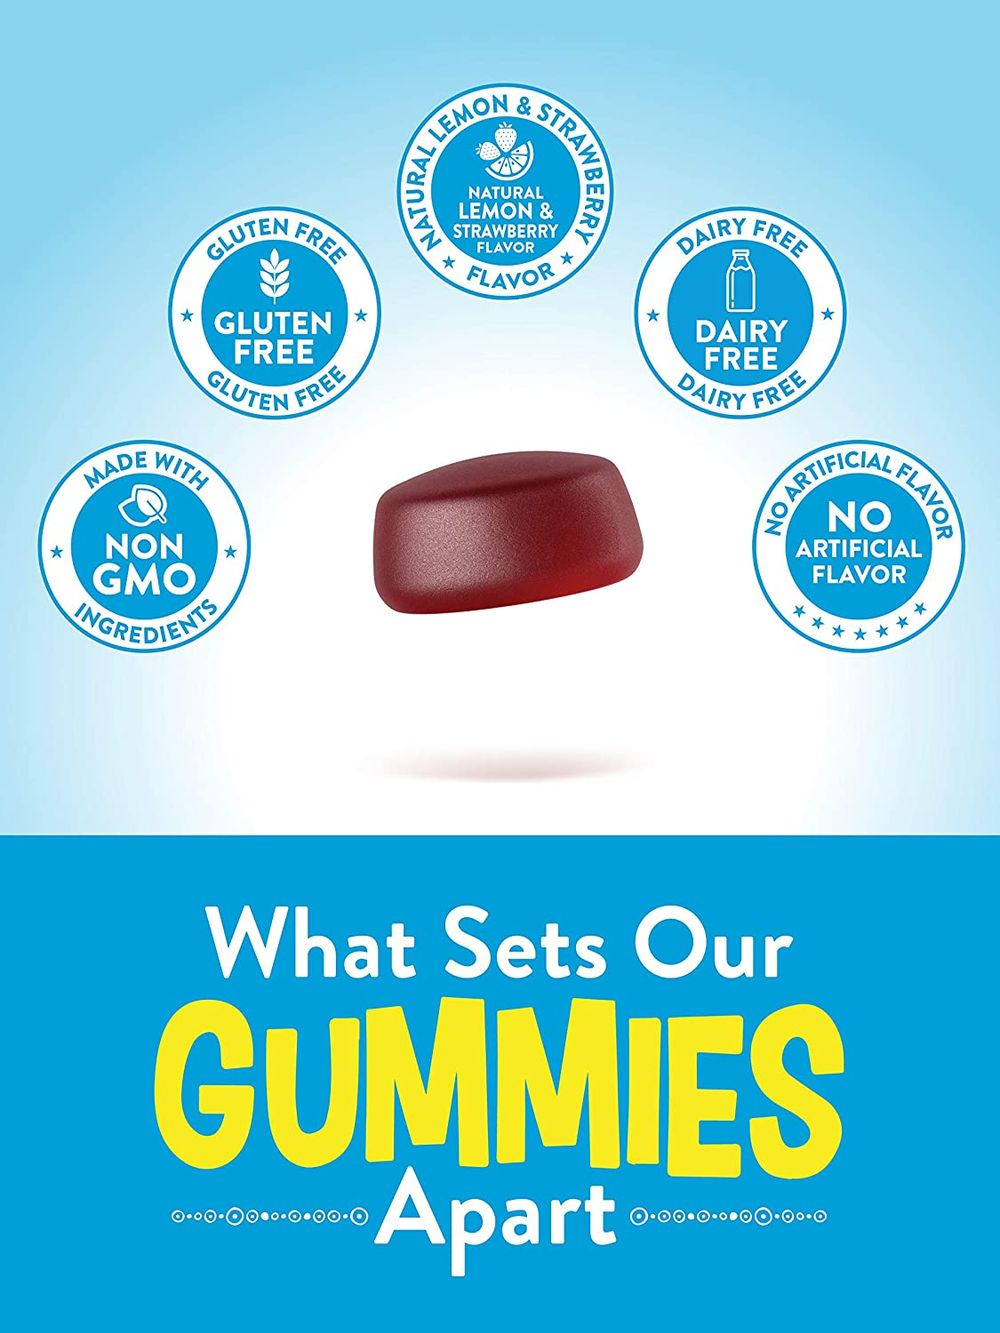 Stress Away Gummies | 48 count | with Gaba and L Theanine | Non GMO, Gluten Free Stress Relief Supplement | Lemon Strawberry Flavor | by Nature's Truth